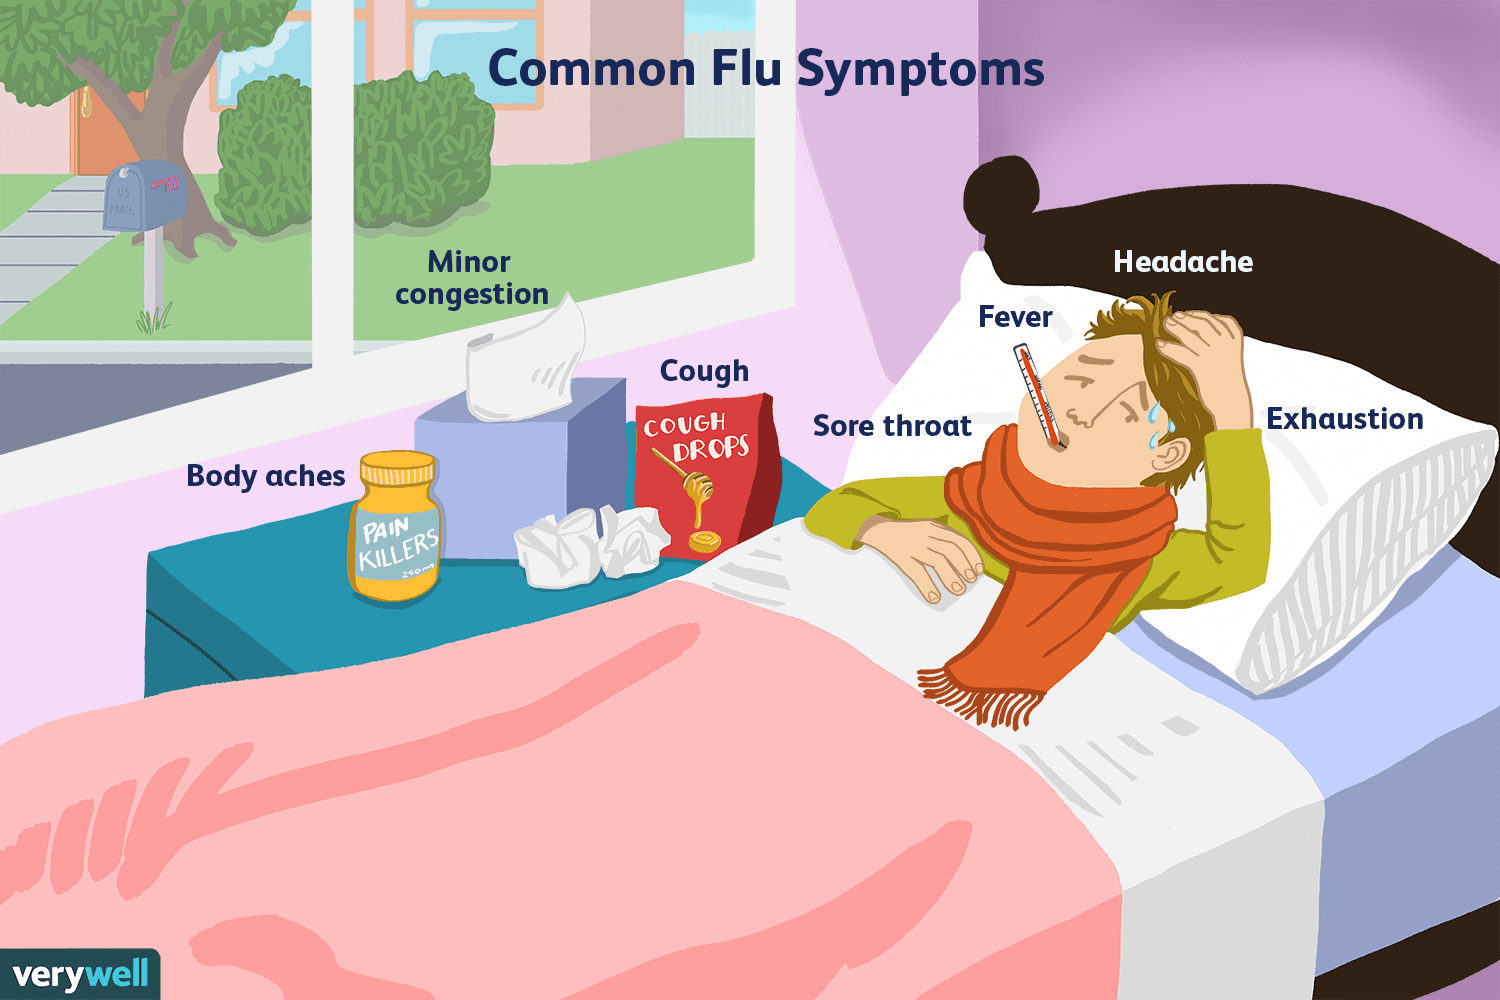 What You Should Know About H3N2 Flu